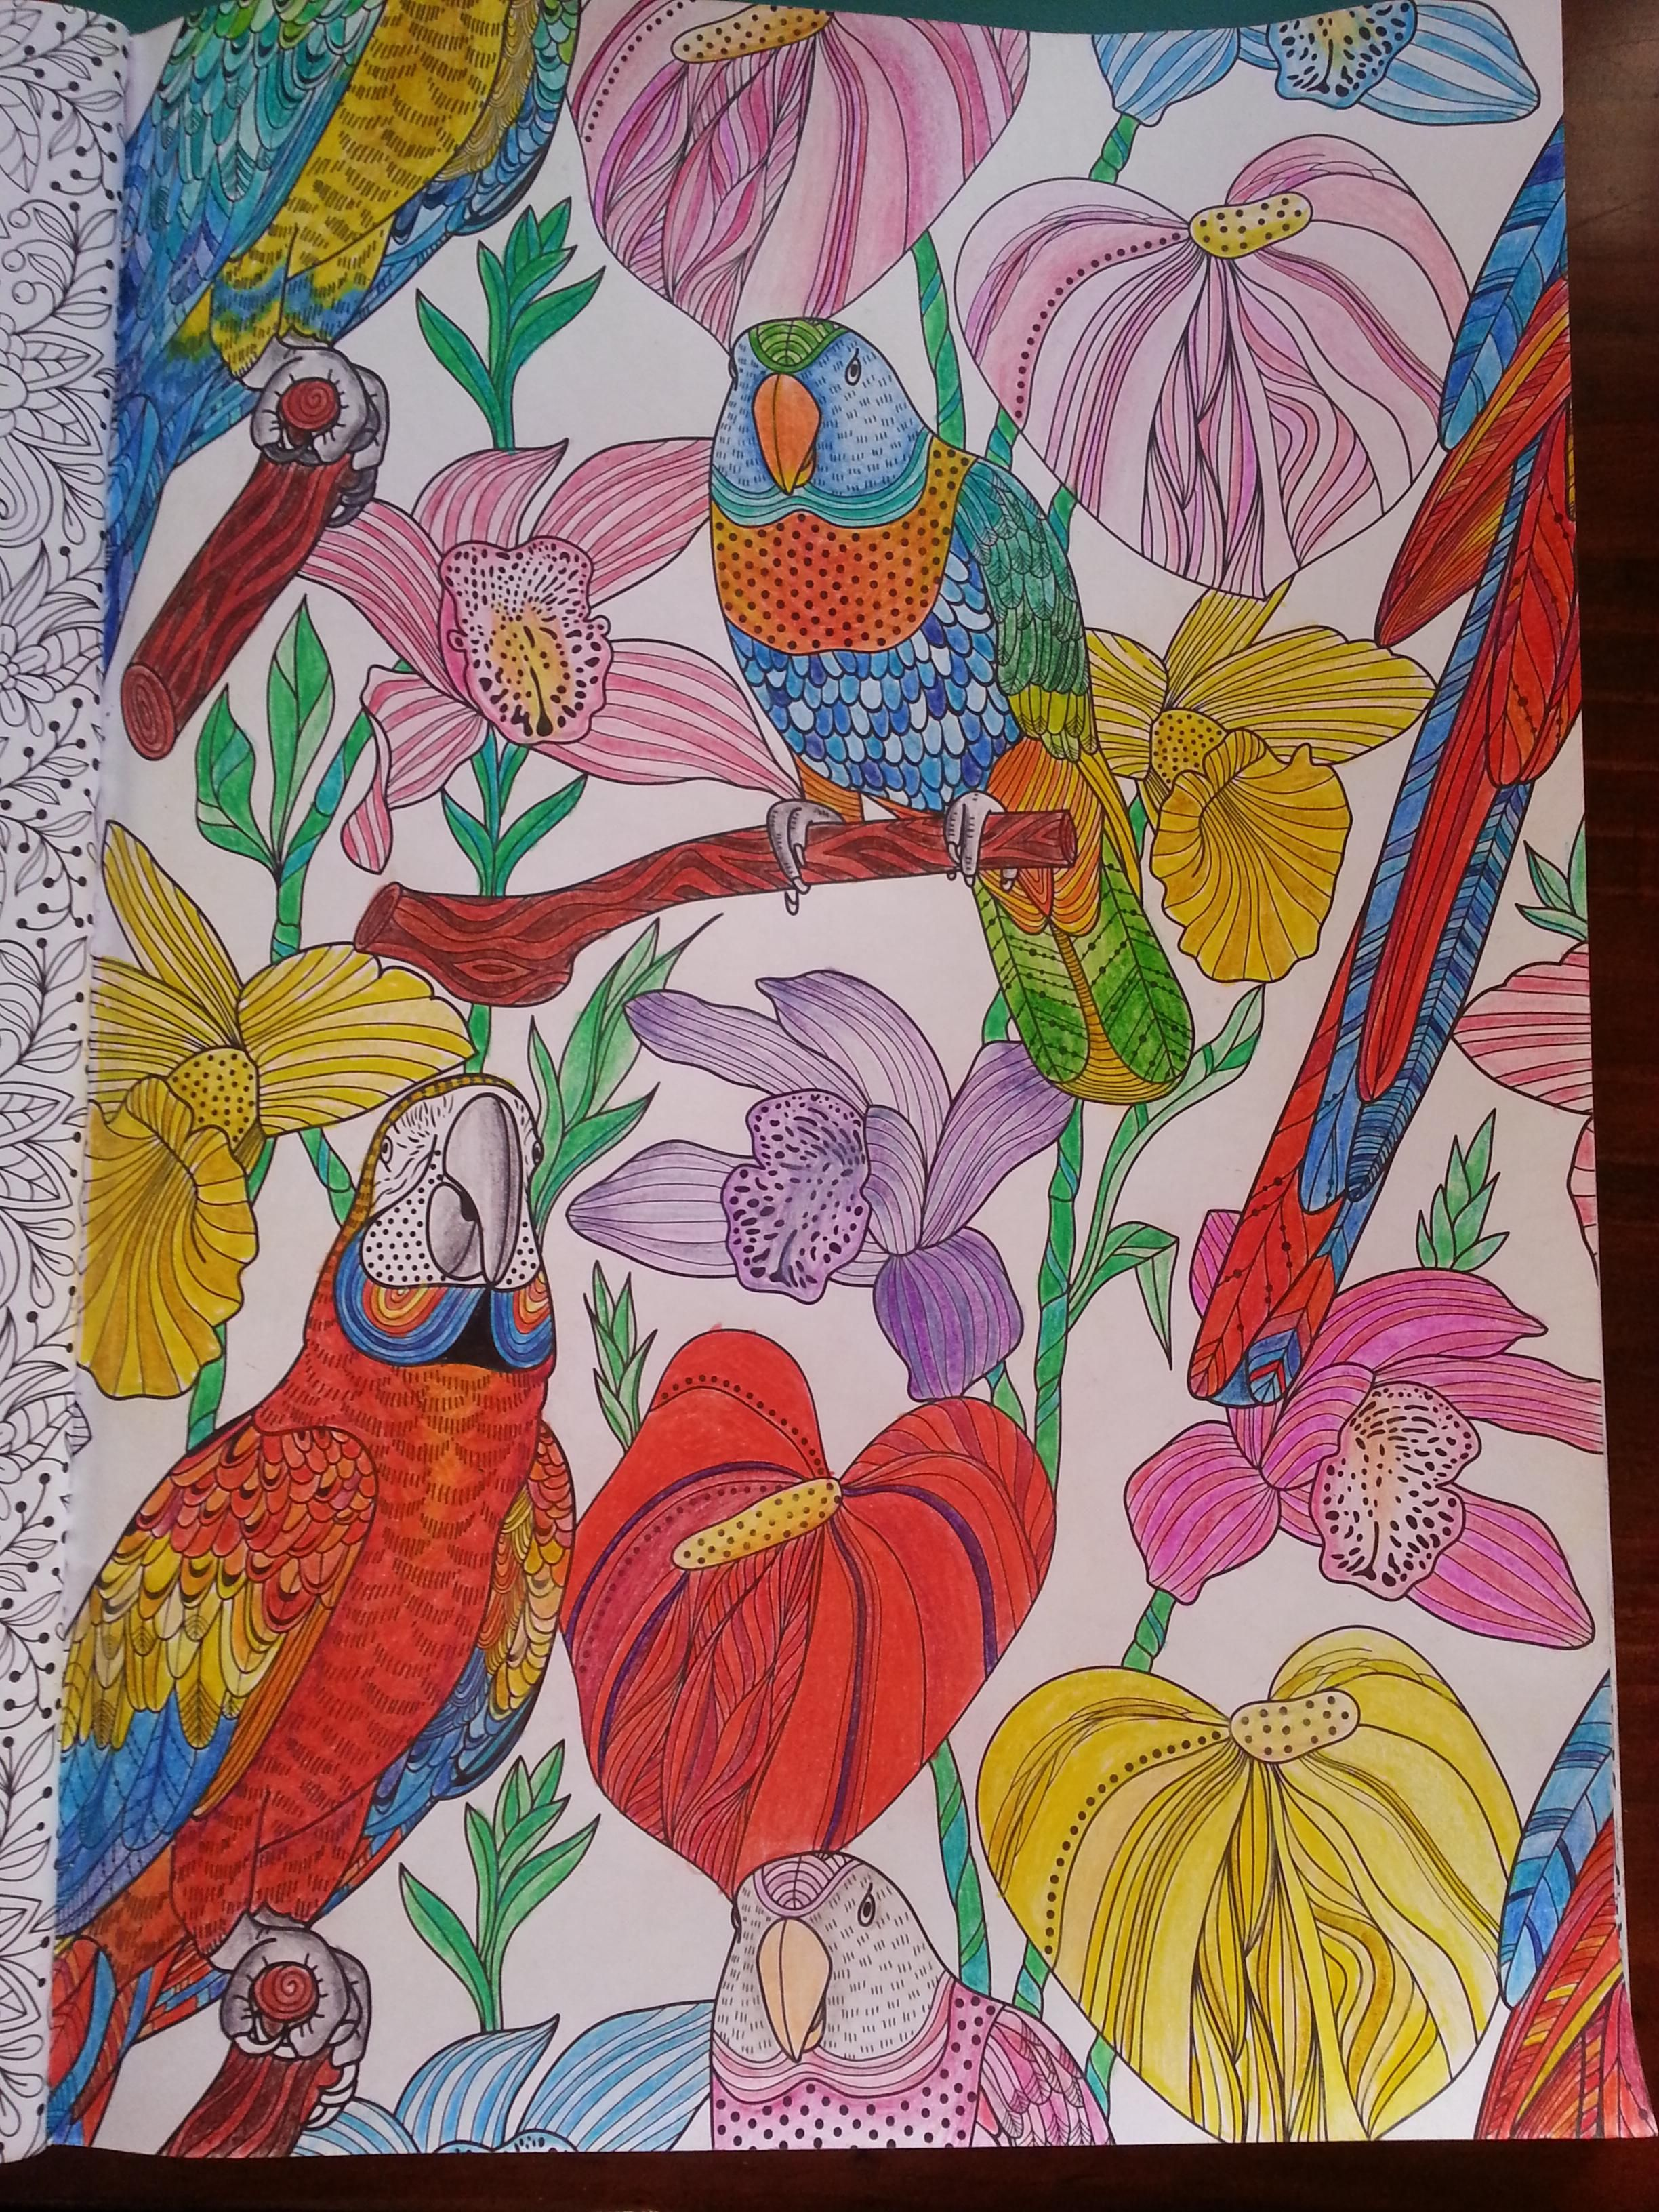 Color me draw me animal kingdom book - I Think This Might Be A Page From Animal Kingdom Color